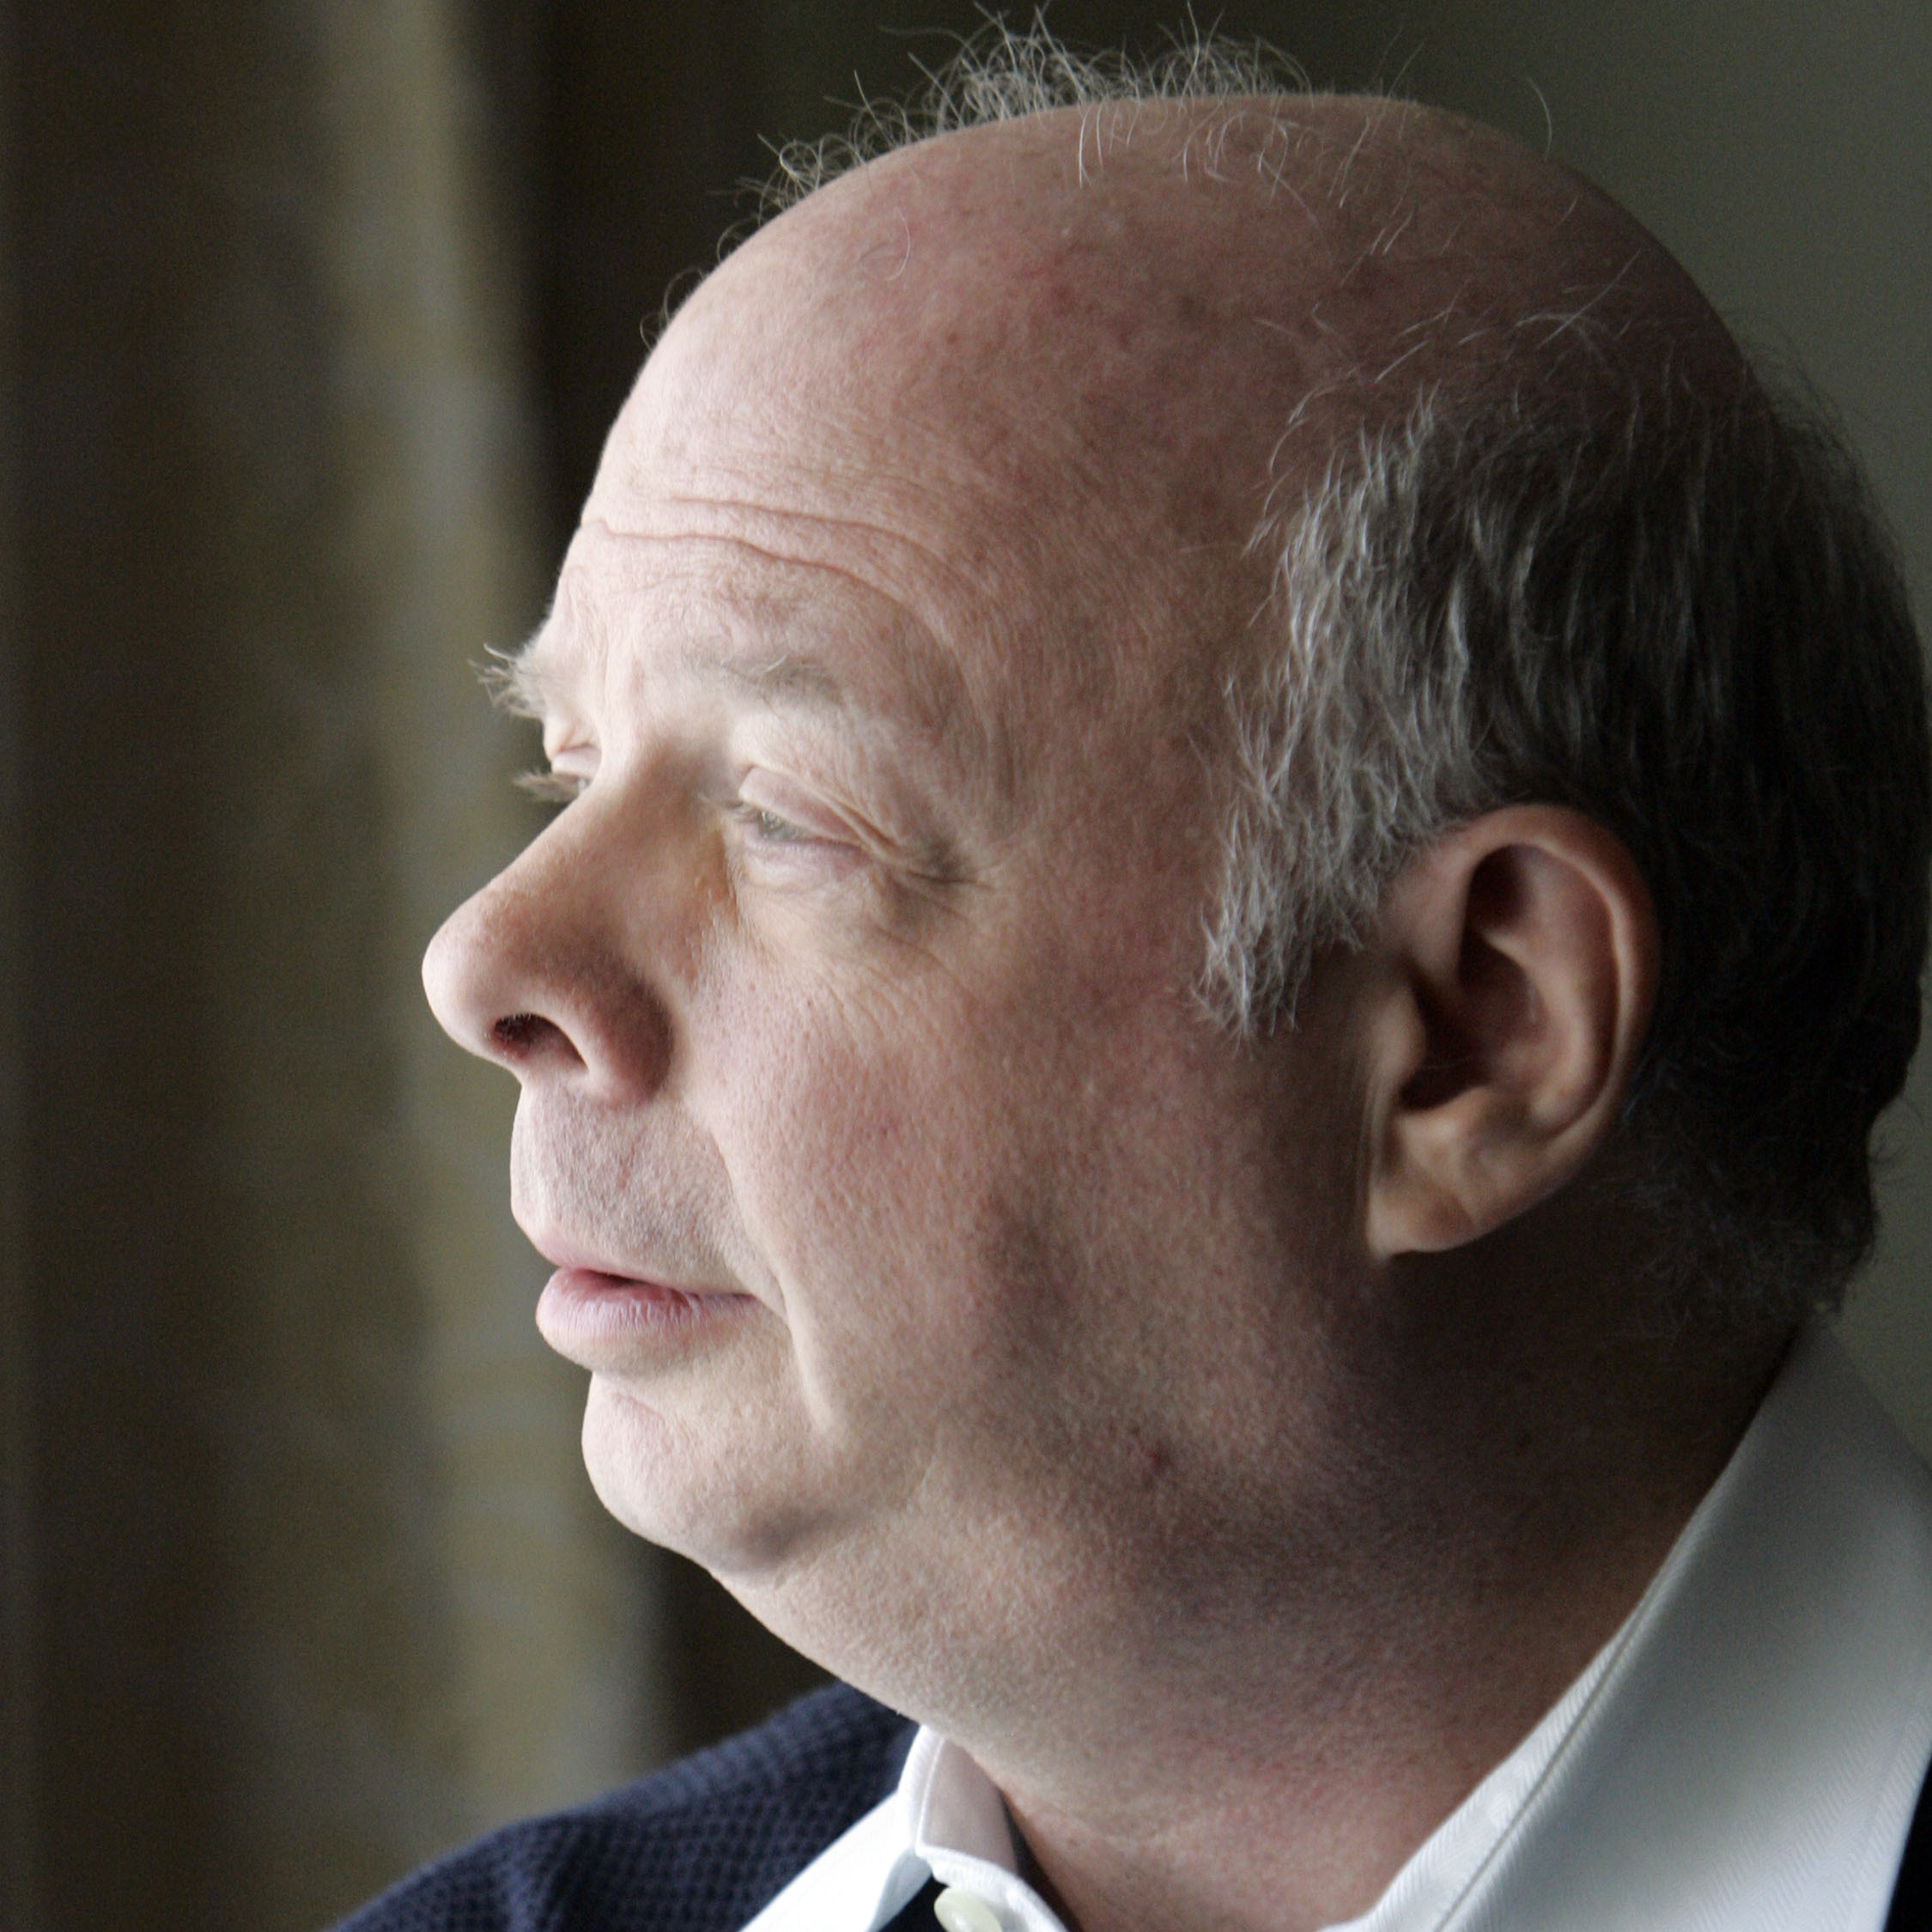 Wallace Shawn wrote the plays The Designated Mourner and Grasses of a Thousand Colors. He also co-wrote and co-starred in My Dinner with Andre.